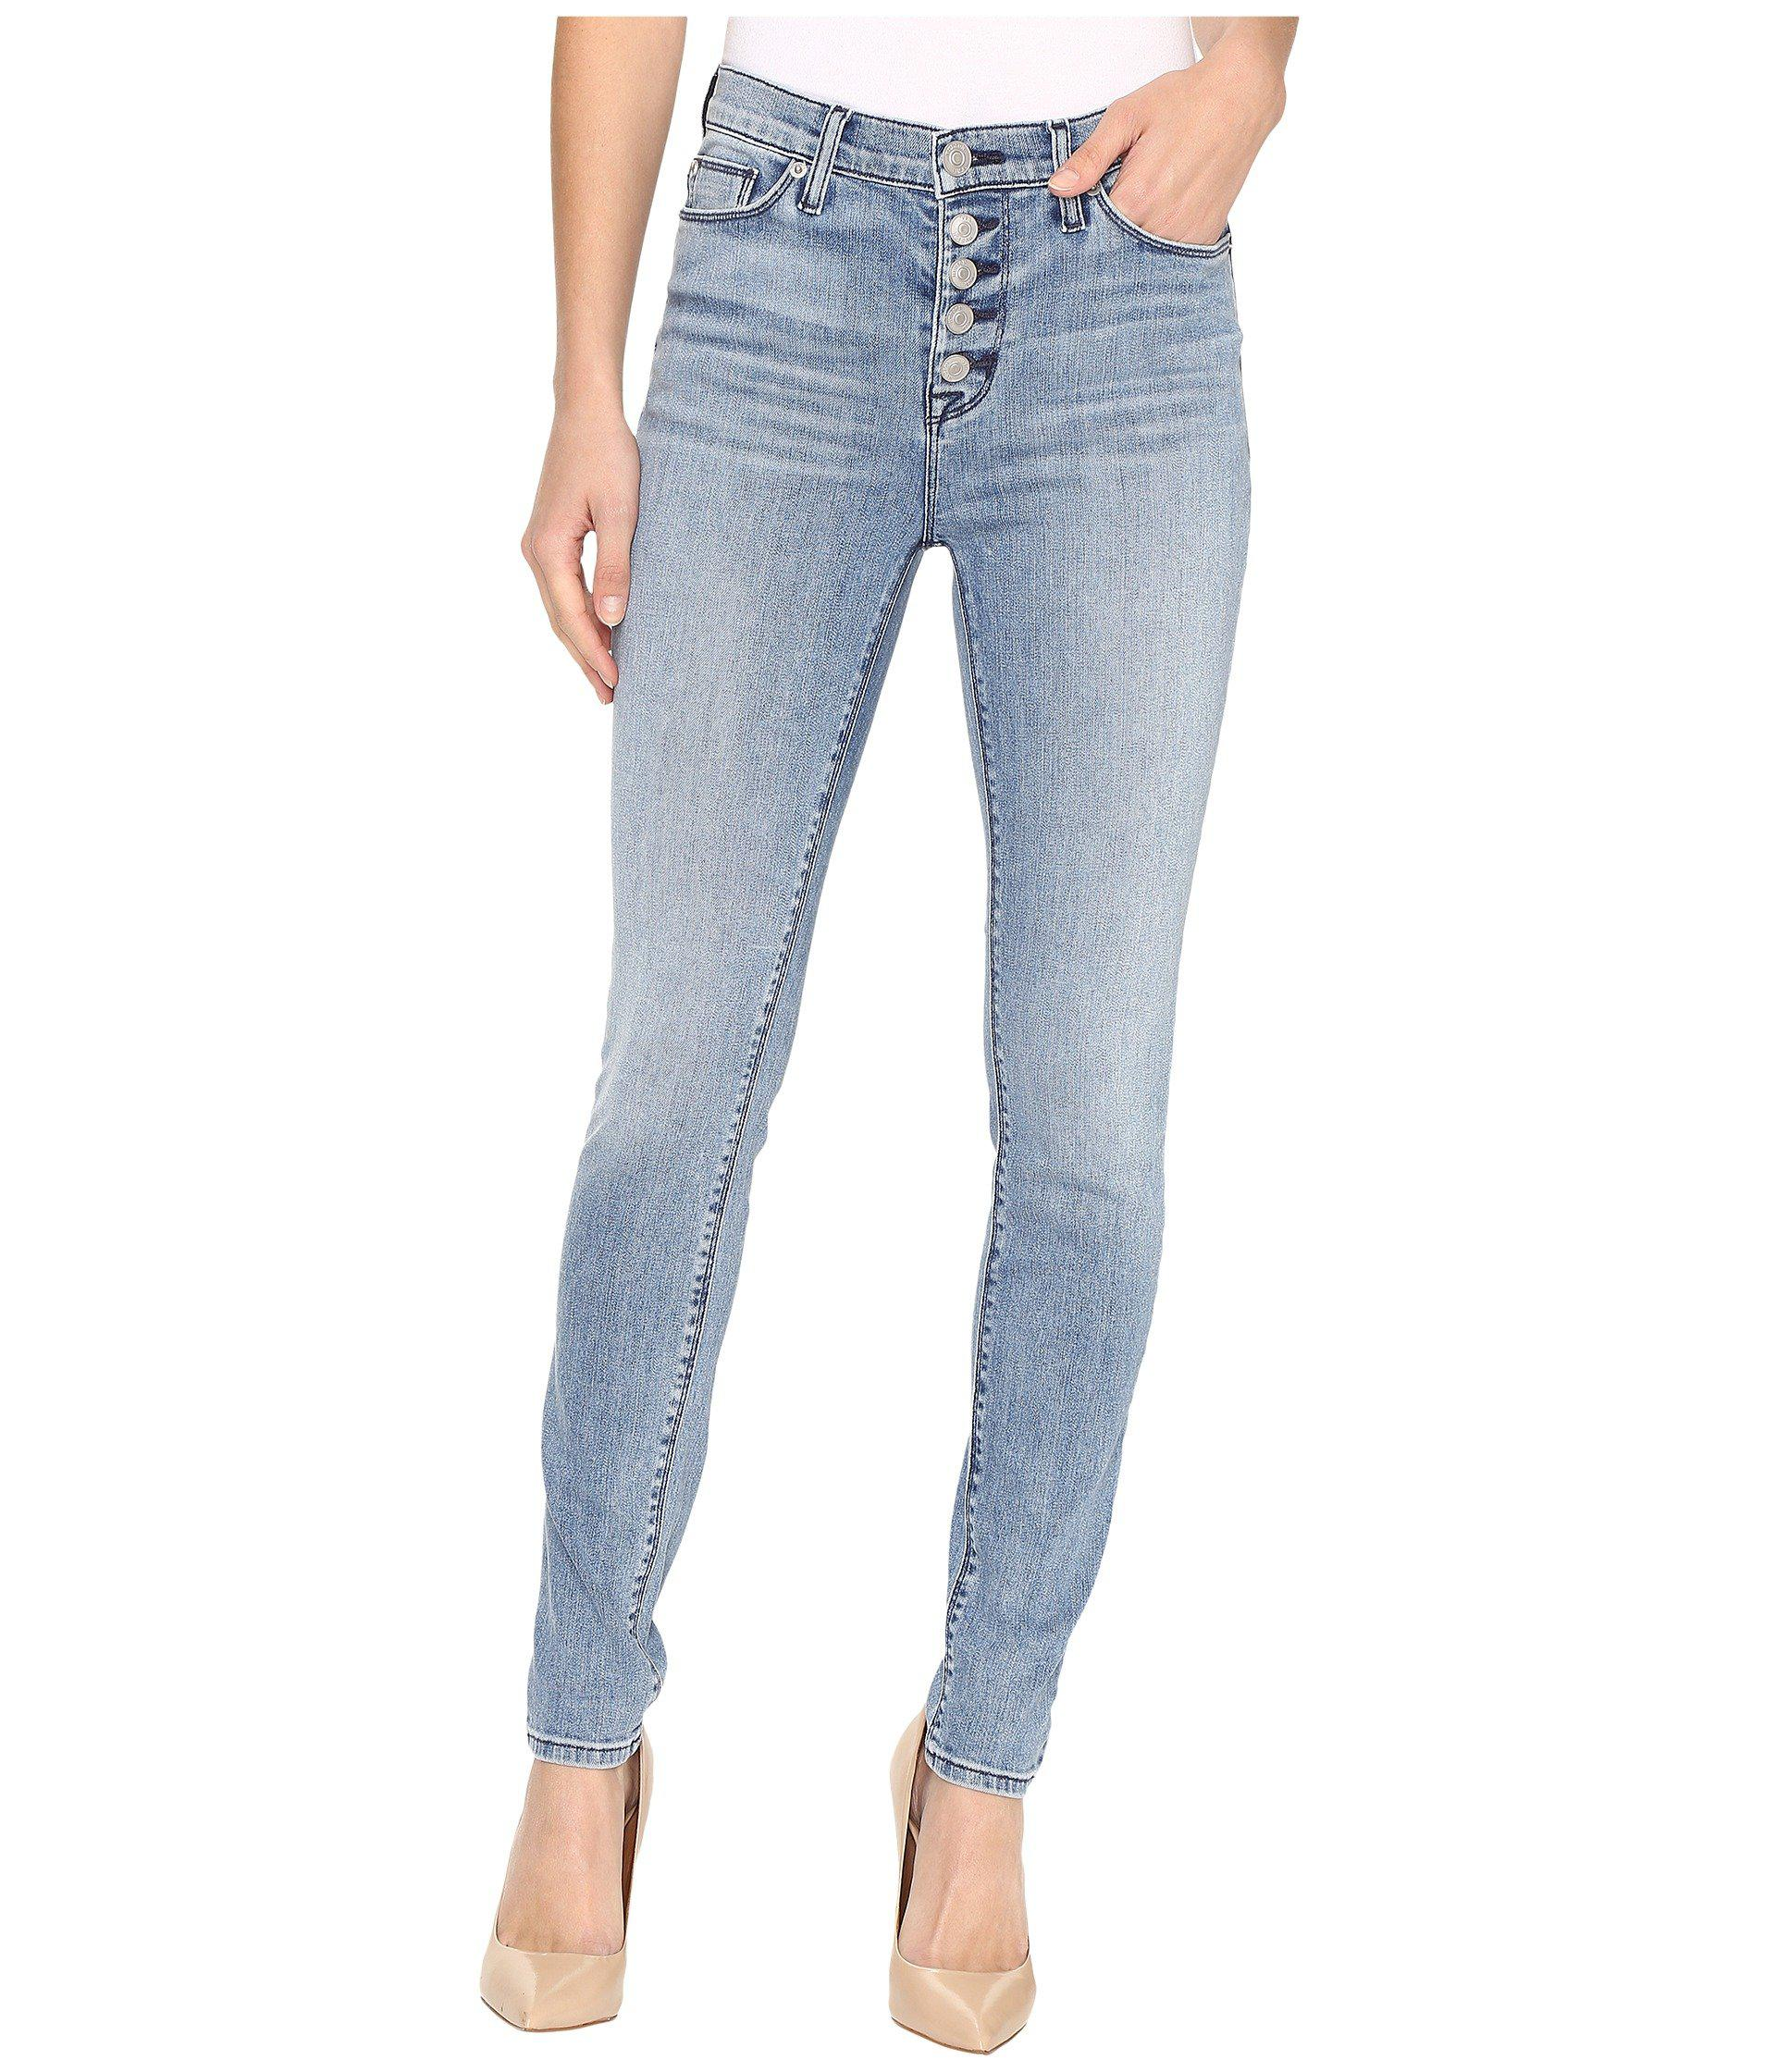 10dc7a4b6fe Lyst - Hudson Jeans Ciara High-rise Exposed Buttons In Shotgun in Blue